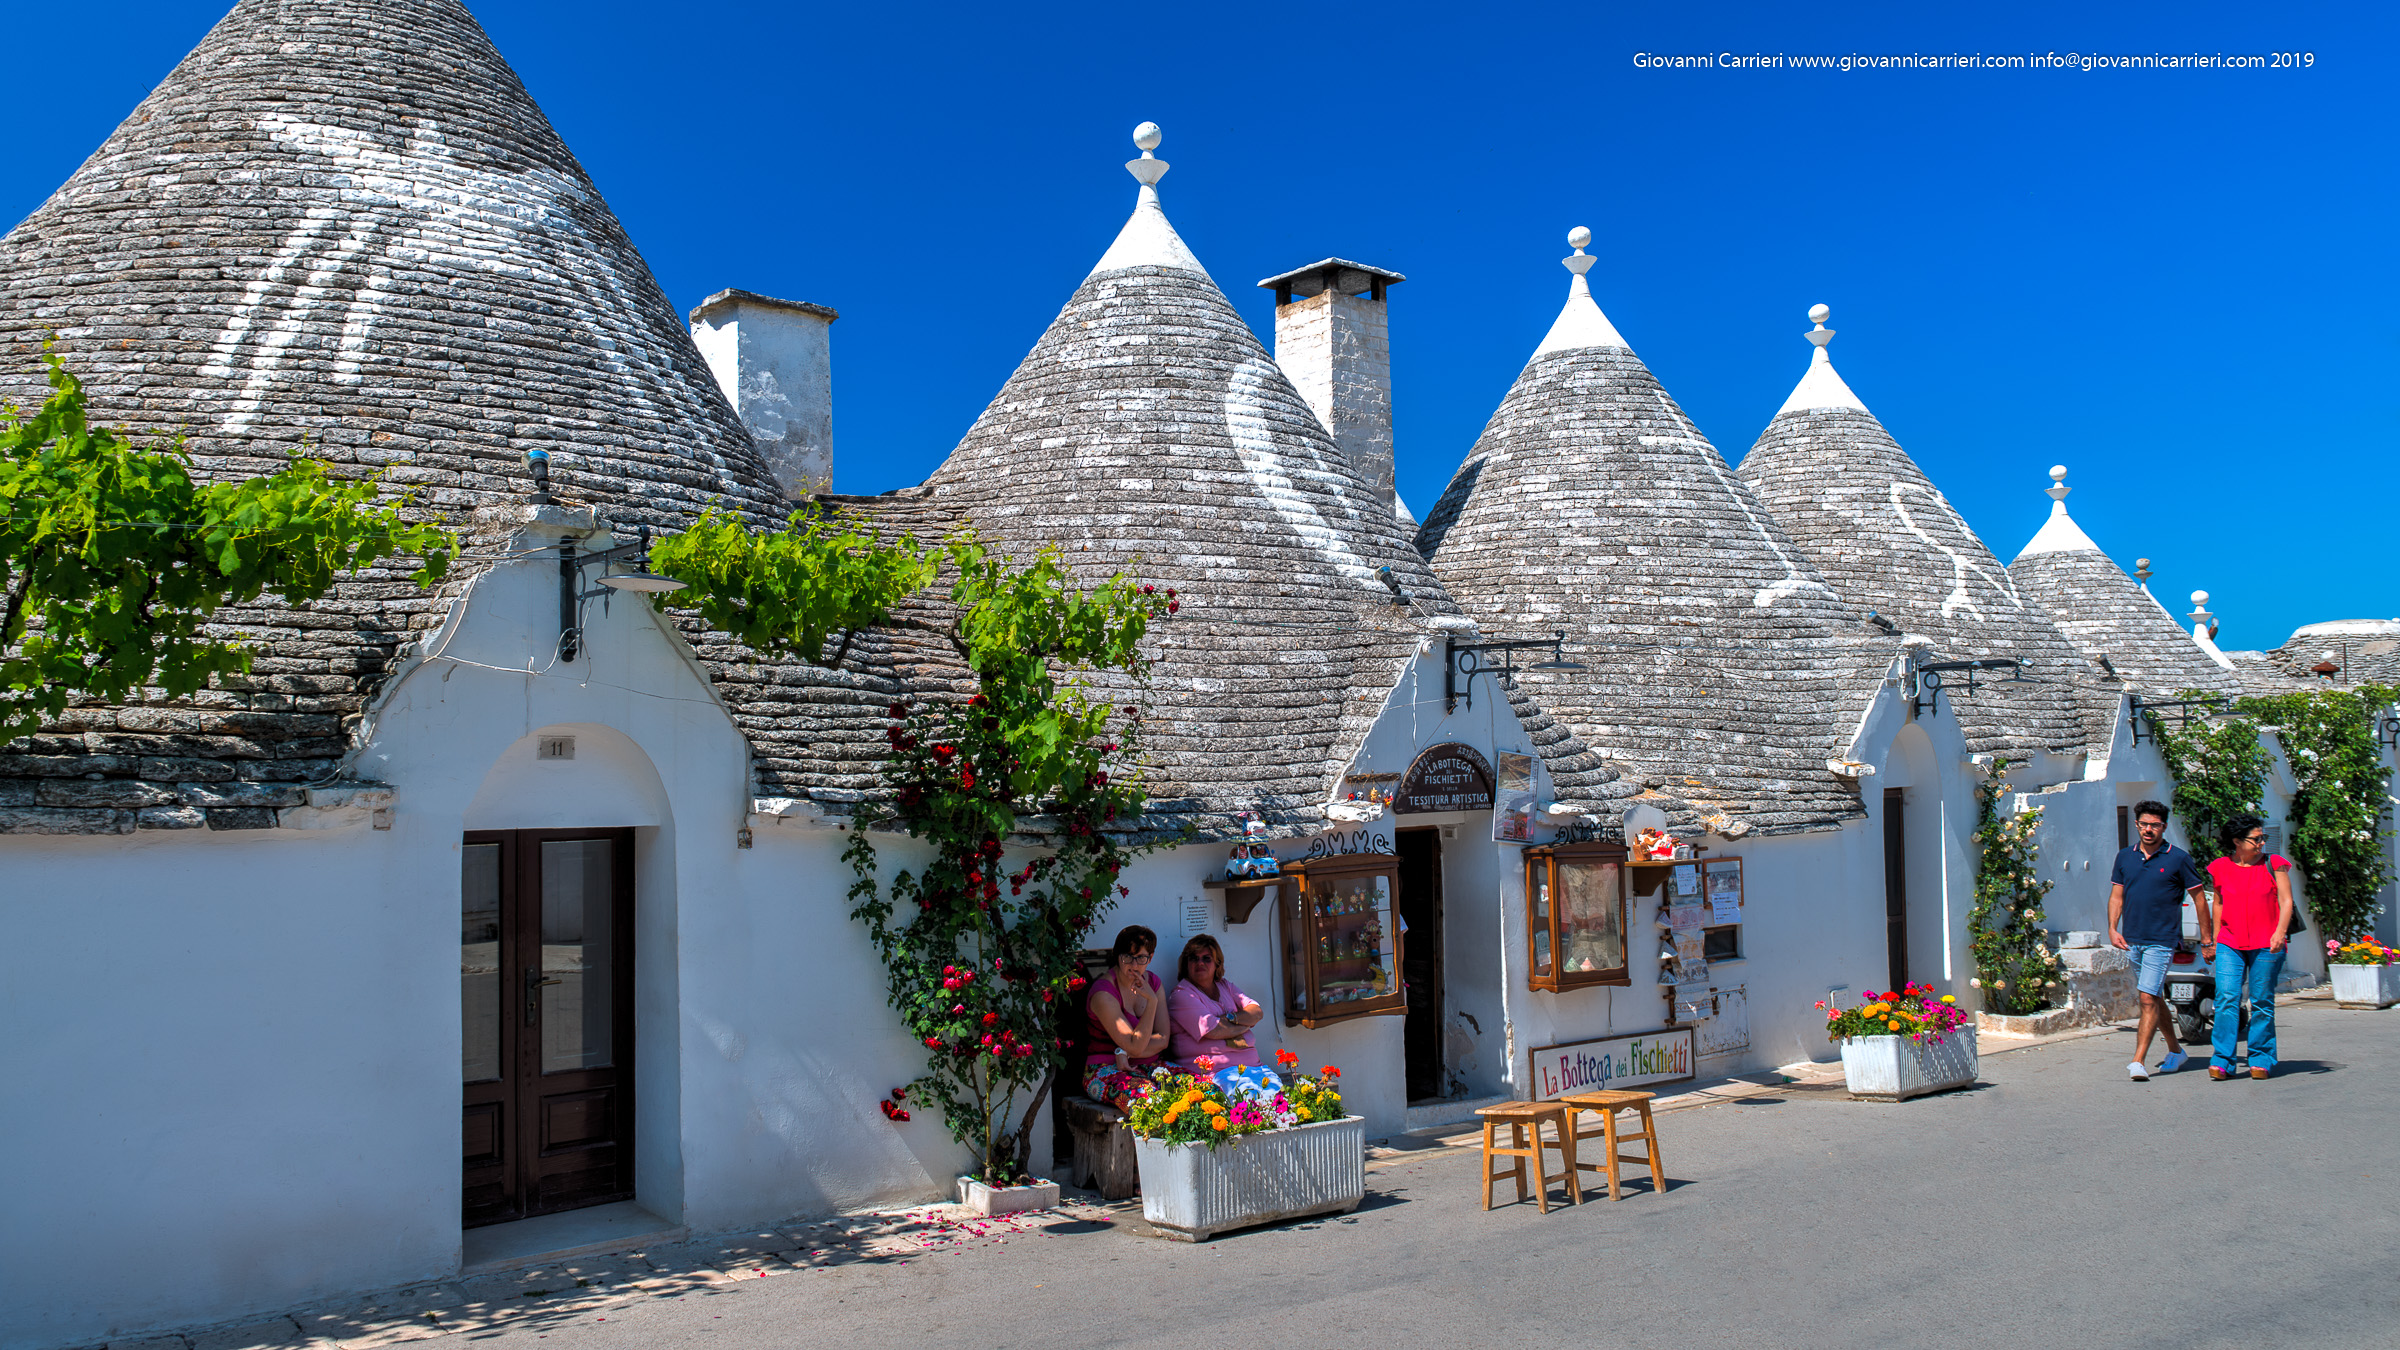 Photographs of Alberobello